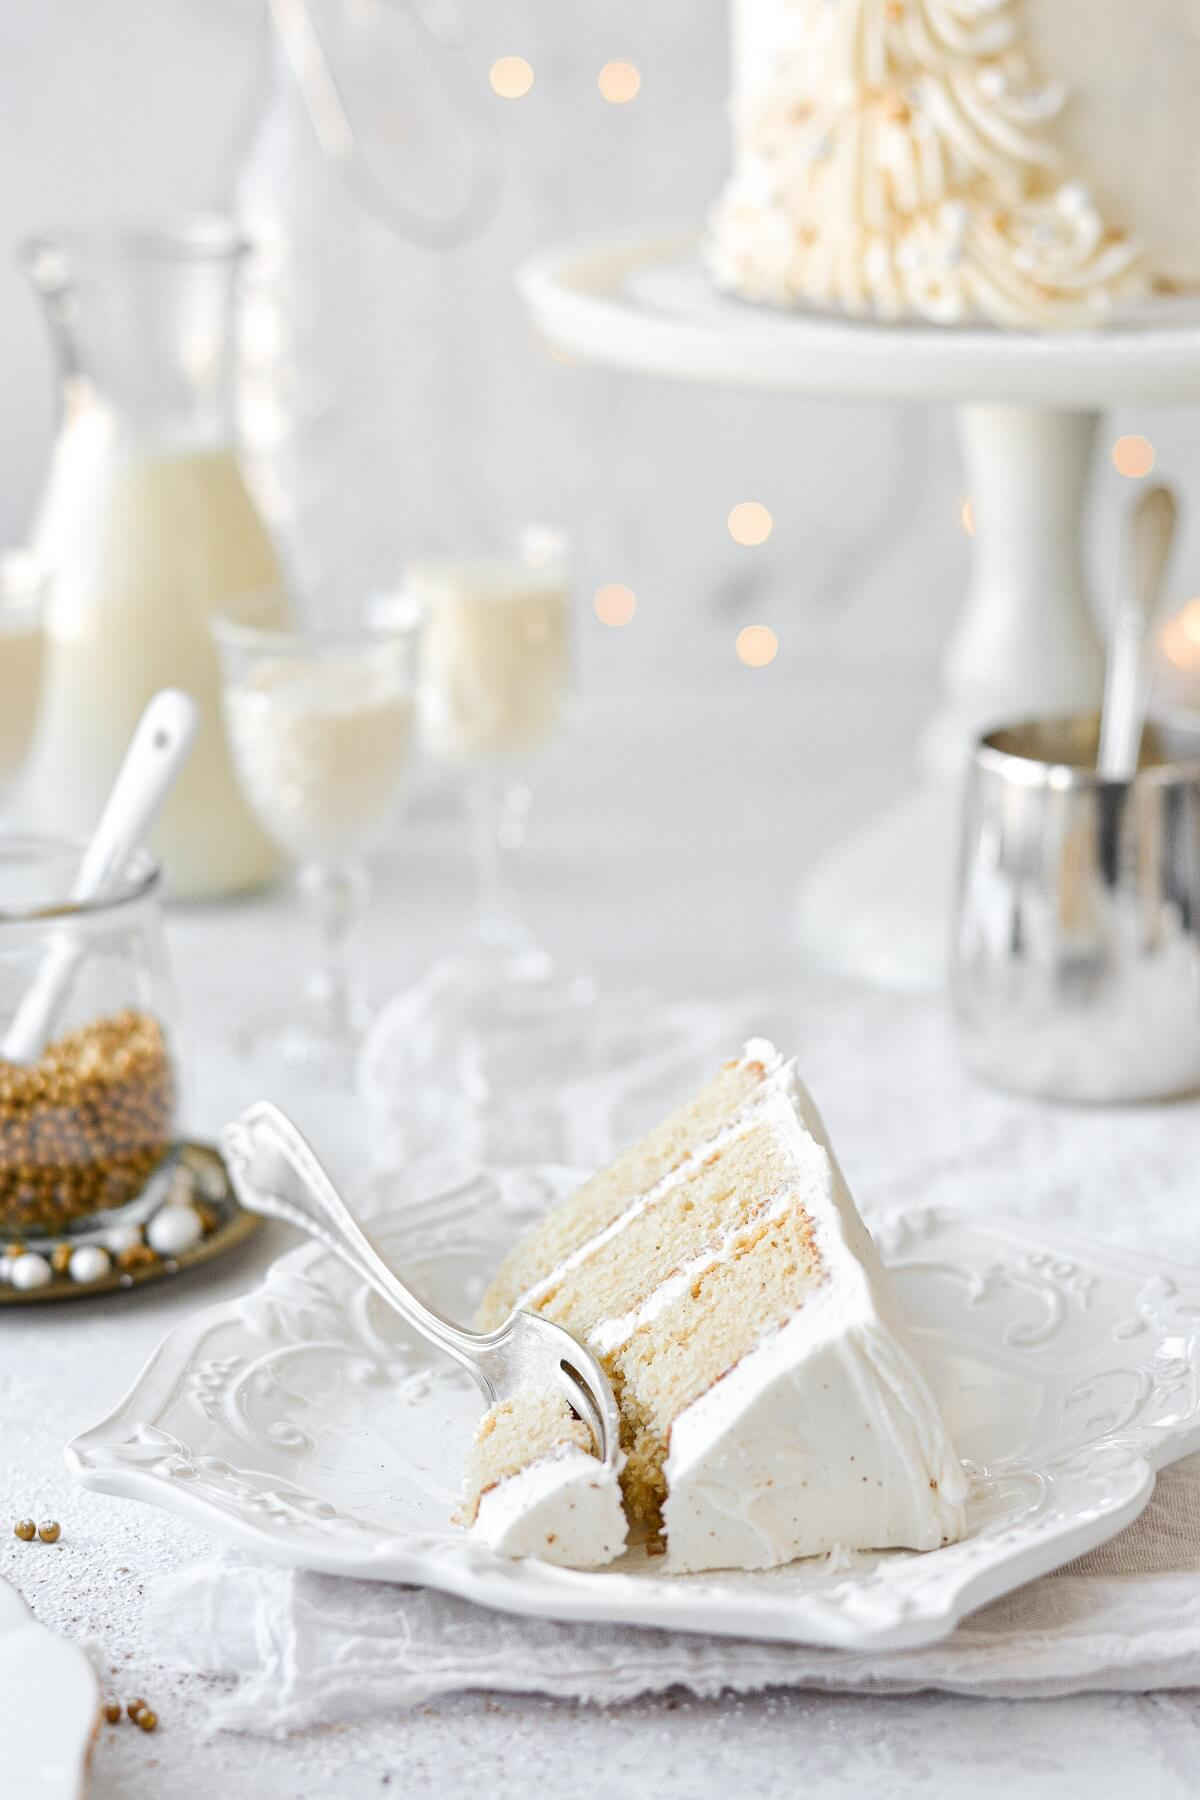 A slice of eggnog cake, with glasses of eggnog in the background.